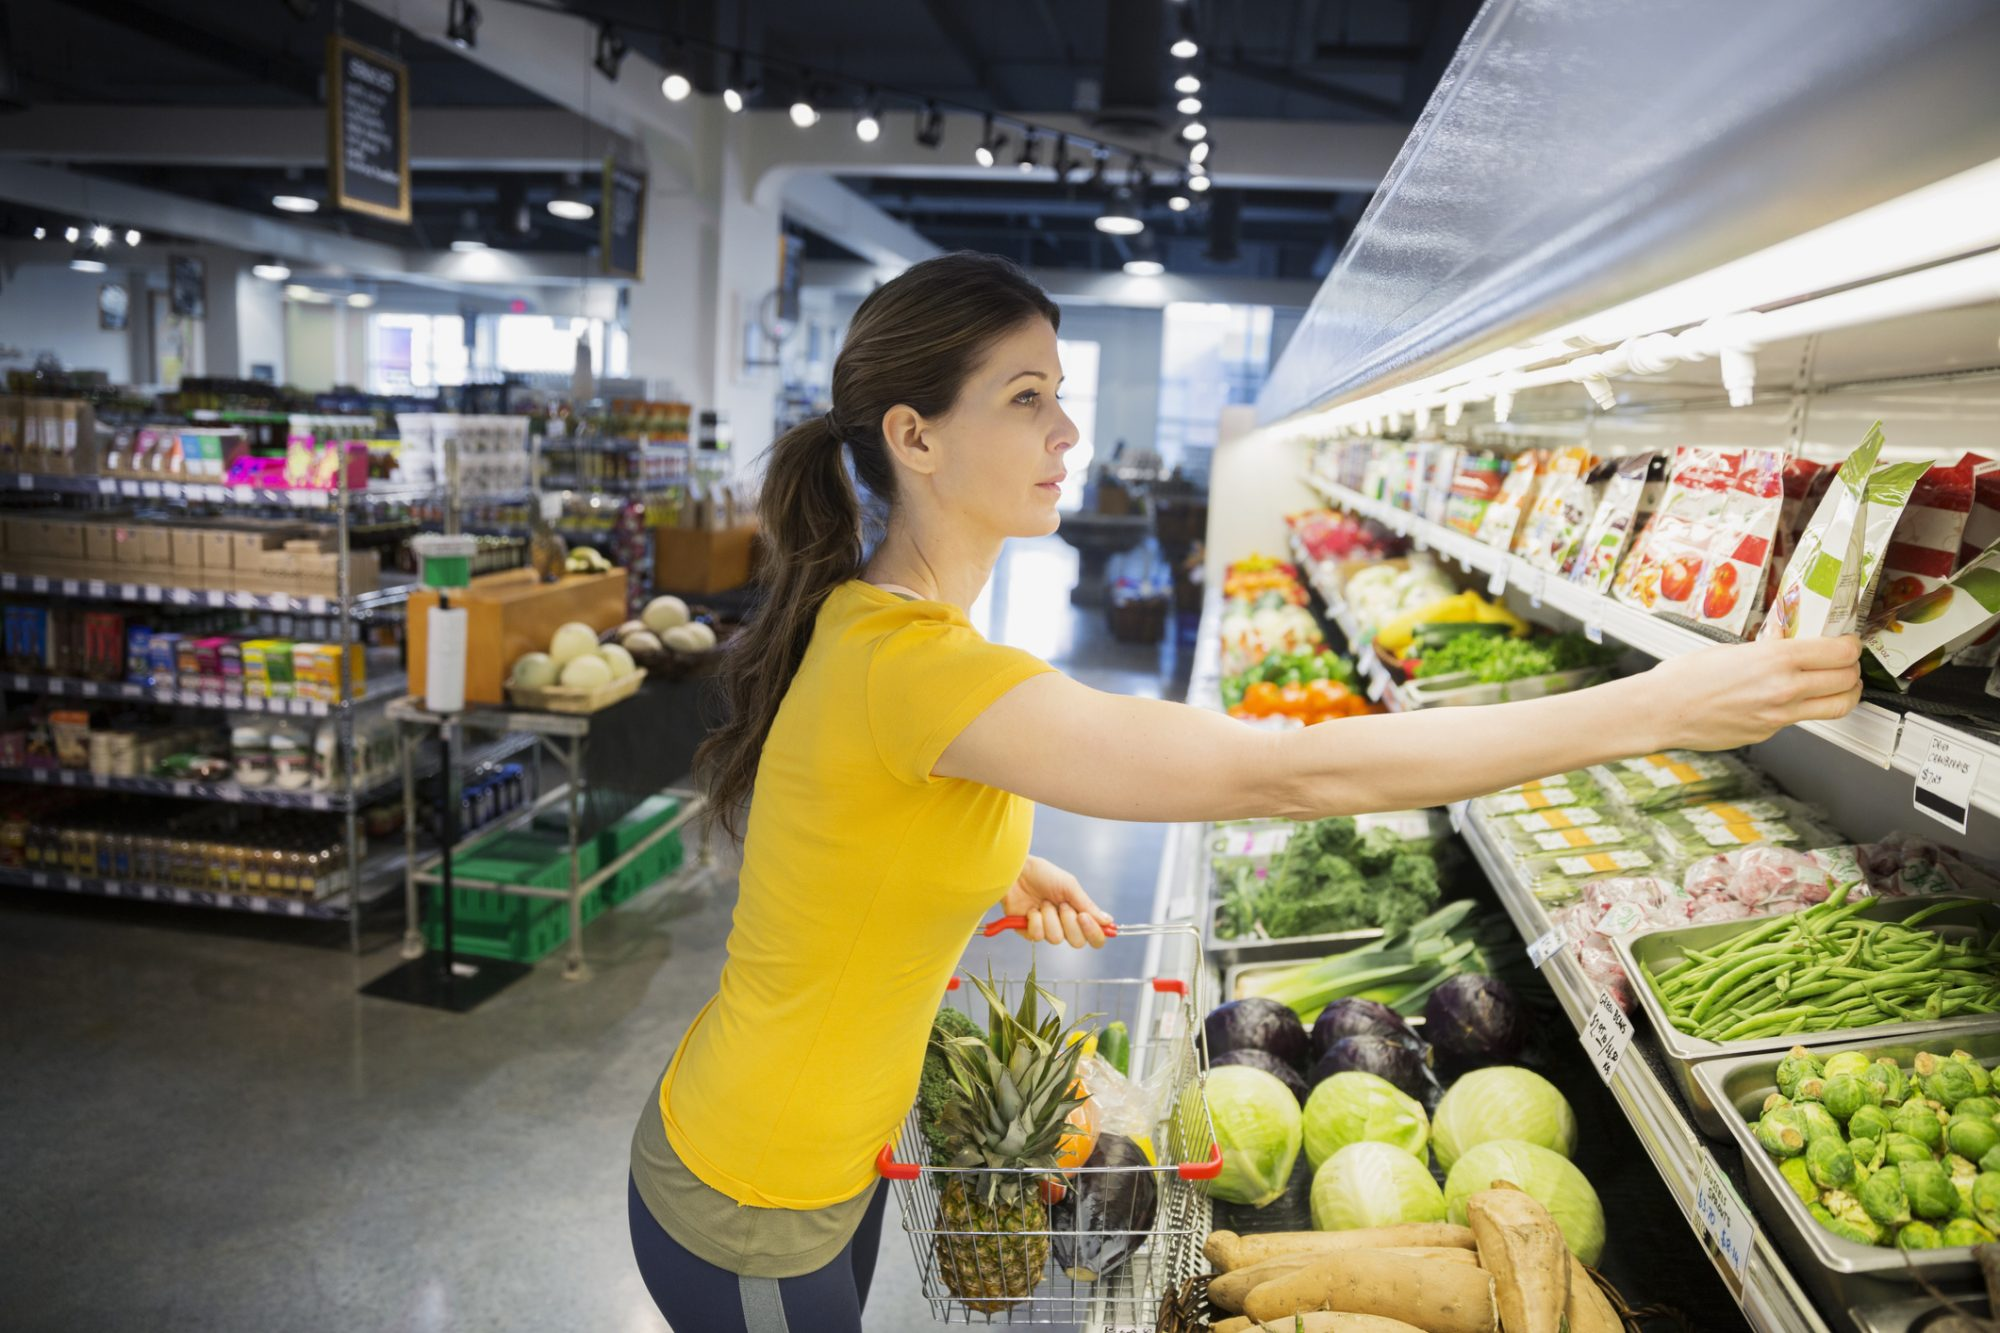 Woman Grocery Shopping in Produce